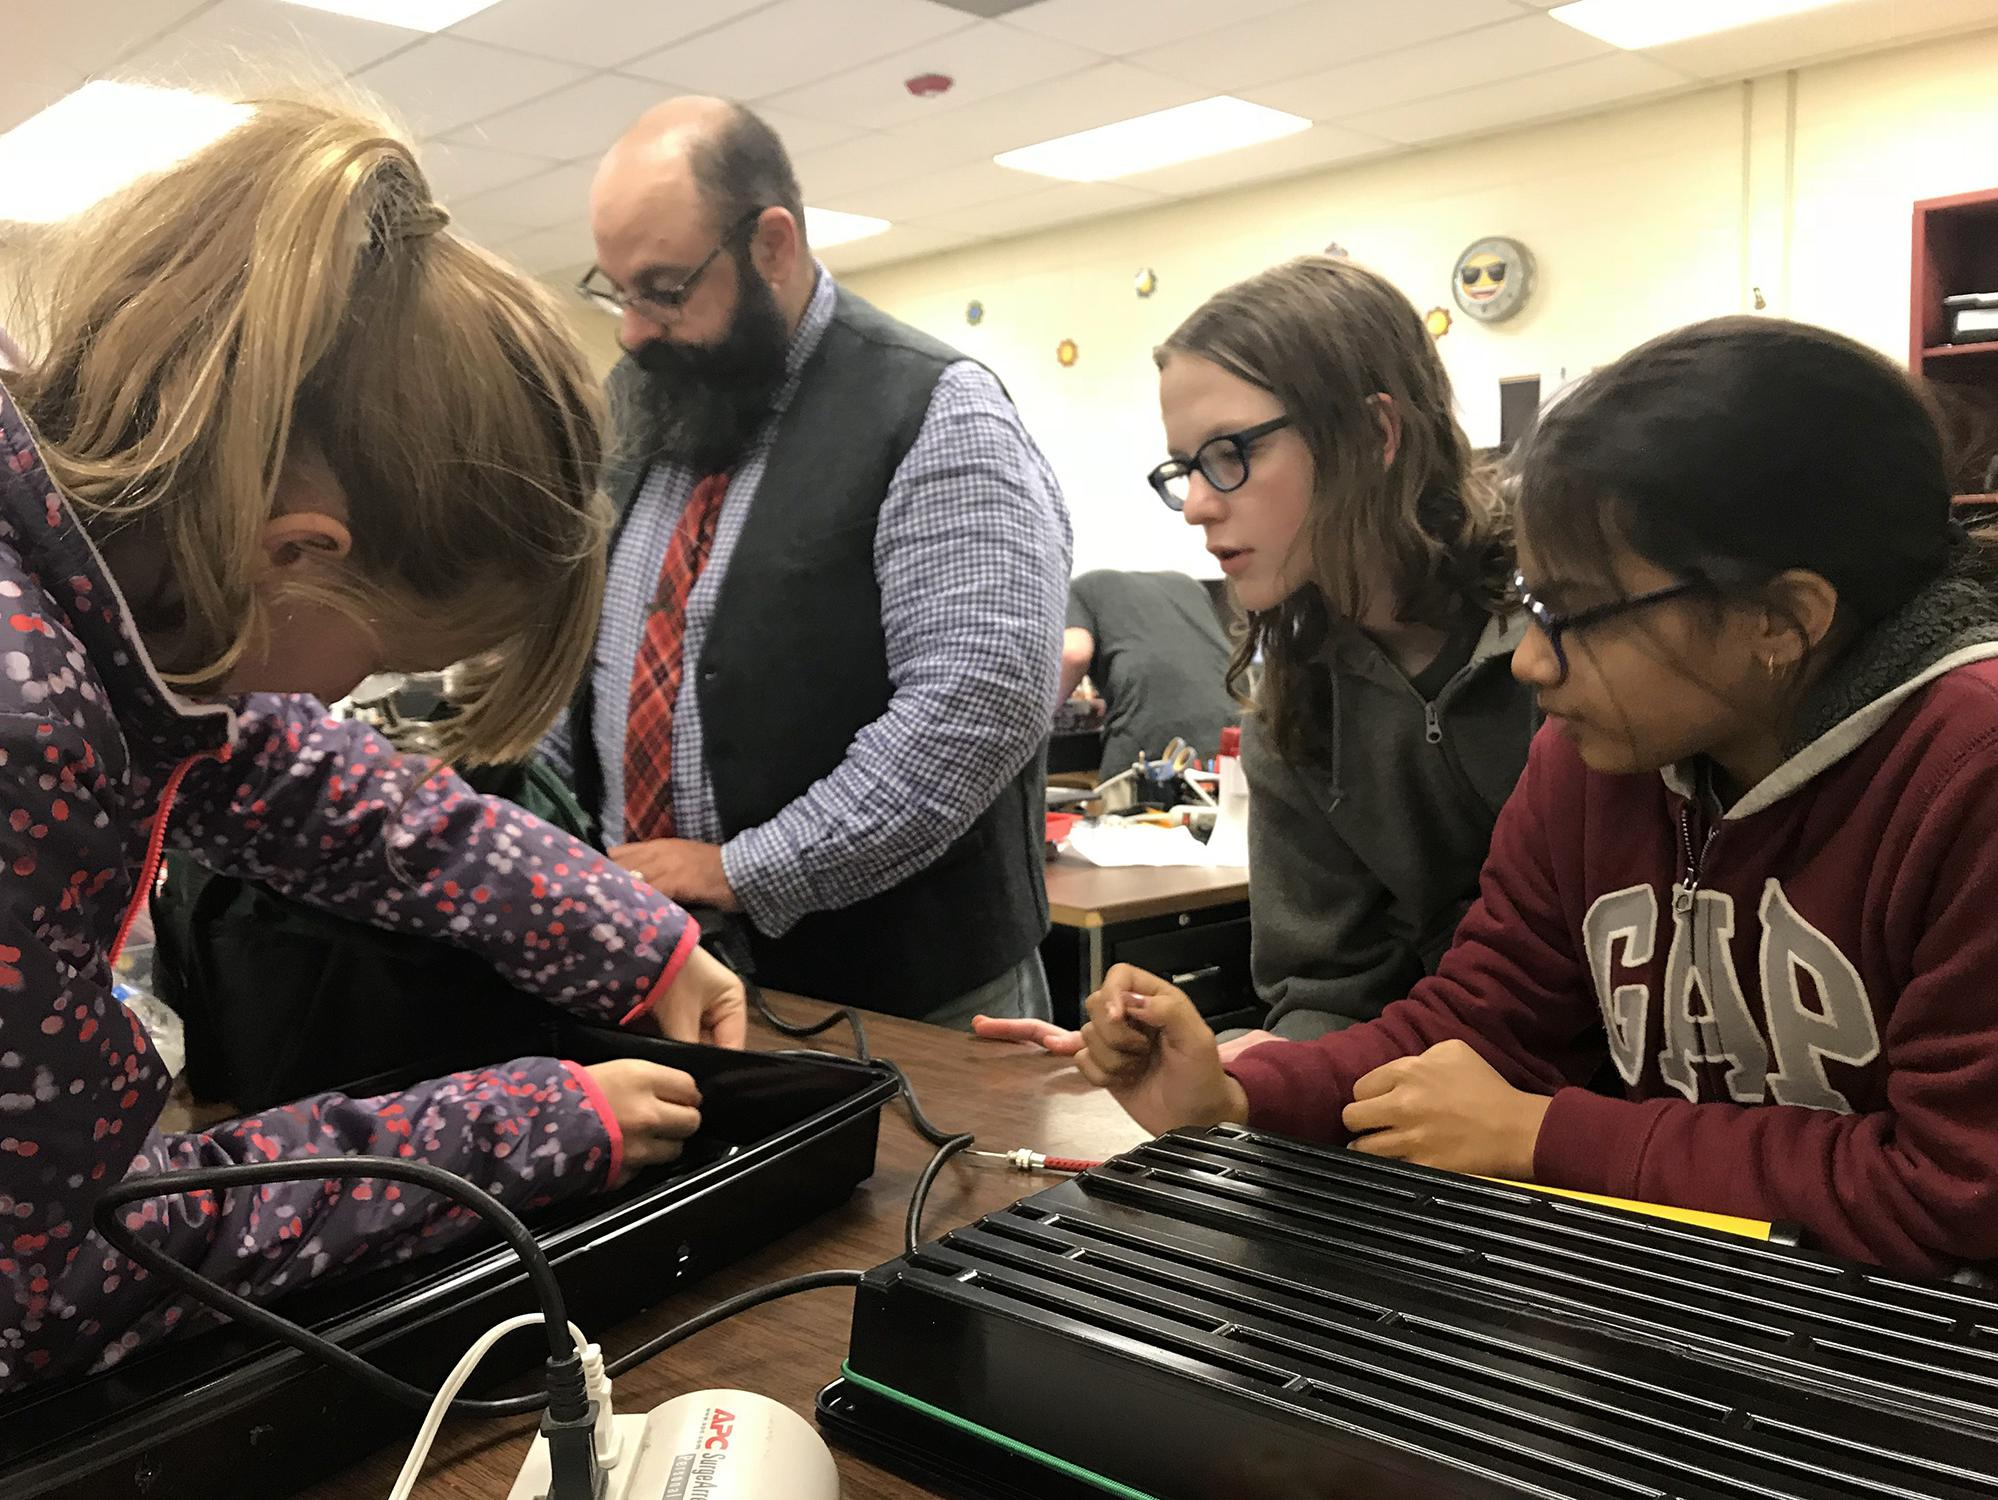 Two middle-school-aged girls and a middle-aged male teacher look on at another girl poking a hole in the side of a black tray for a science project.